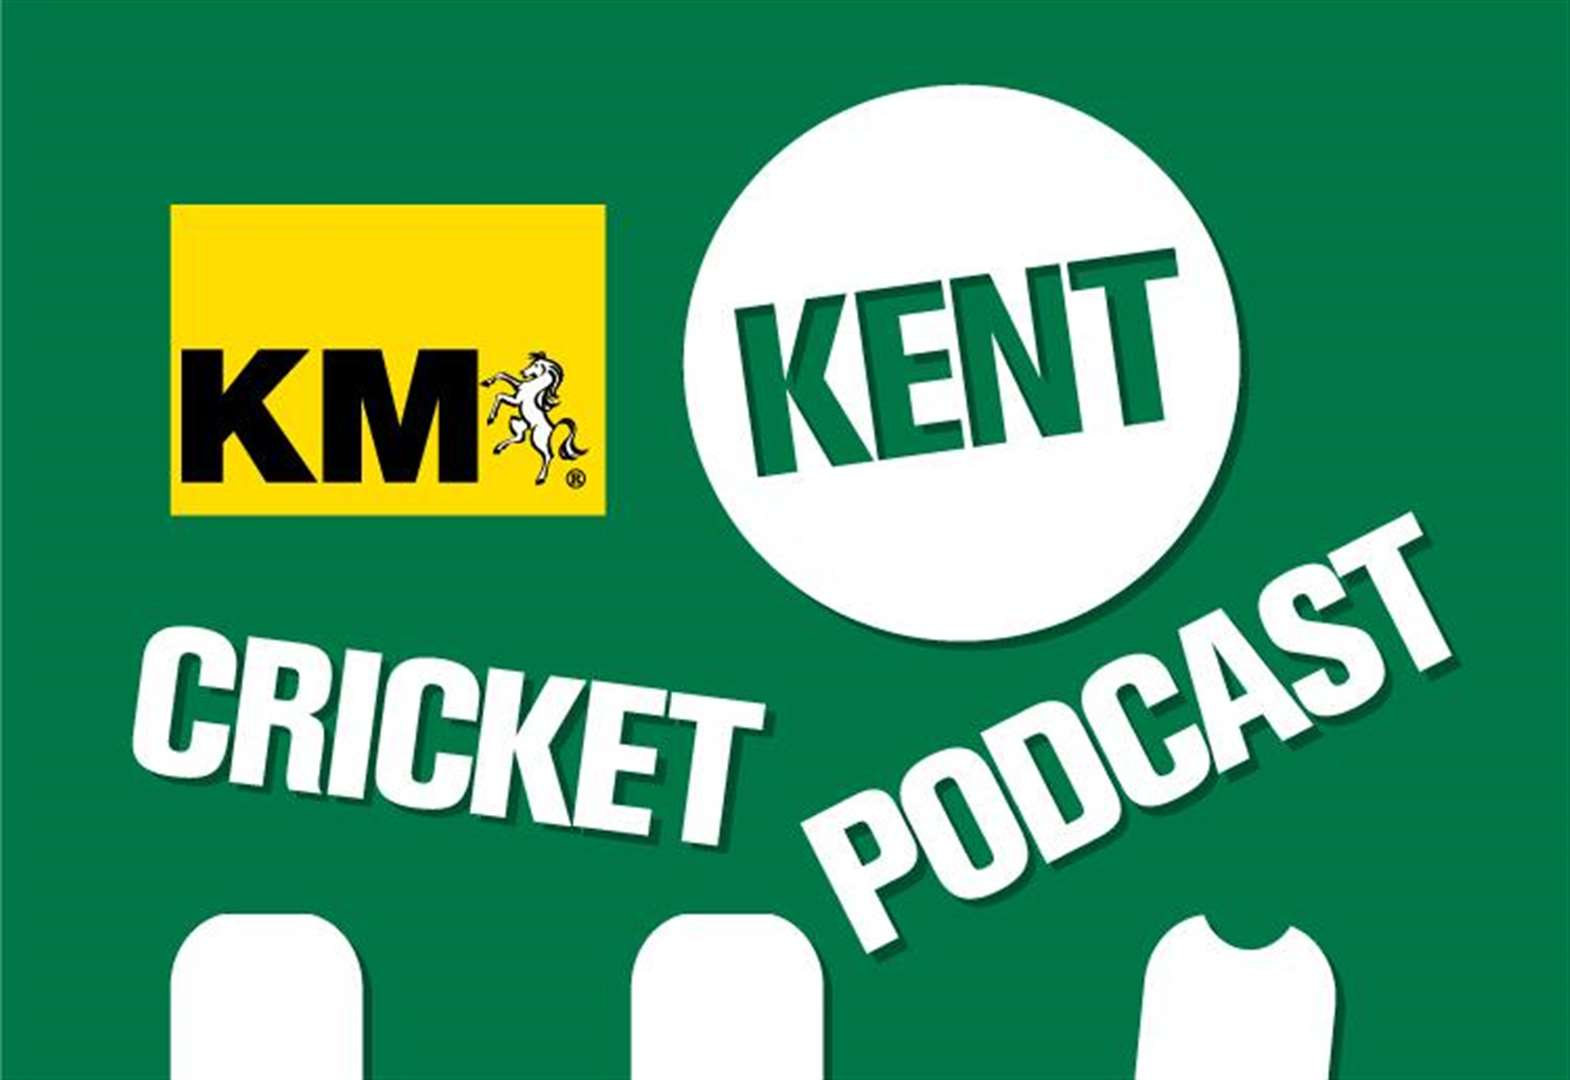 Kent Cricket Podcast episode 13